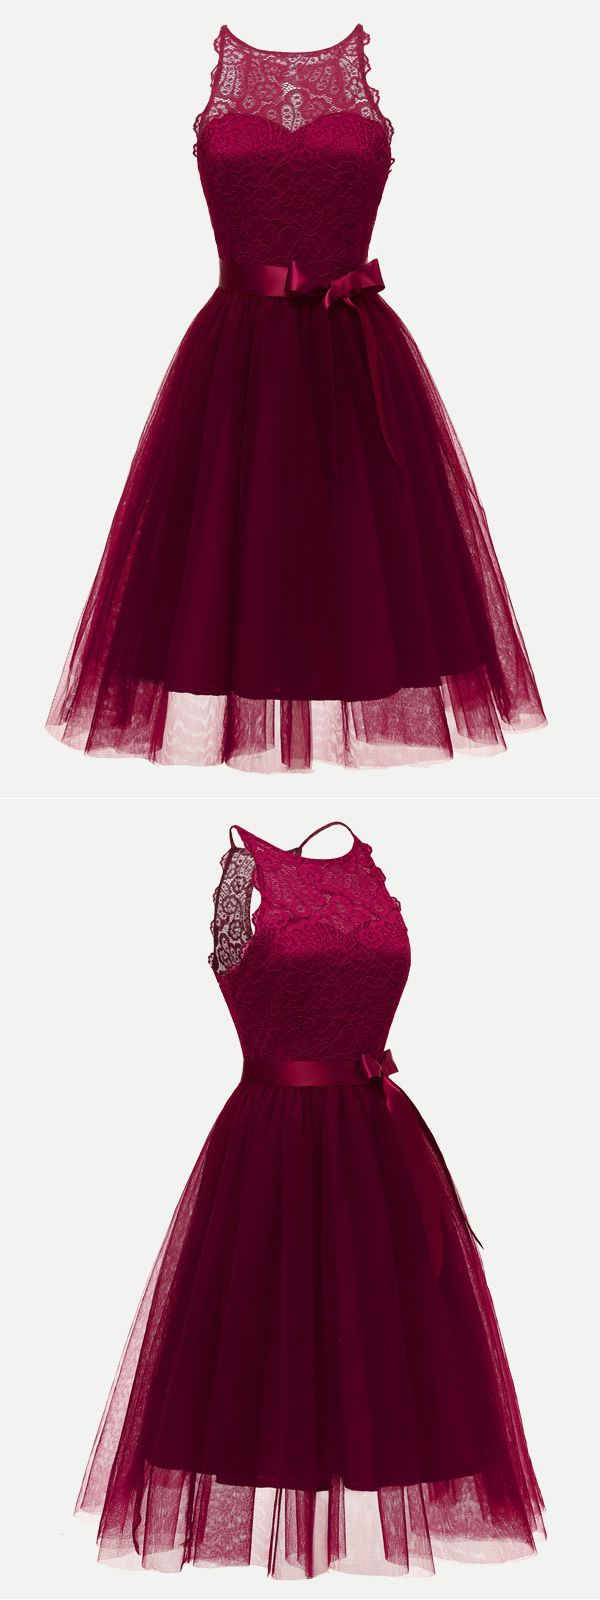 Vinfemass lace sleeveless bowknot fitted solid color evening dress